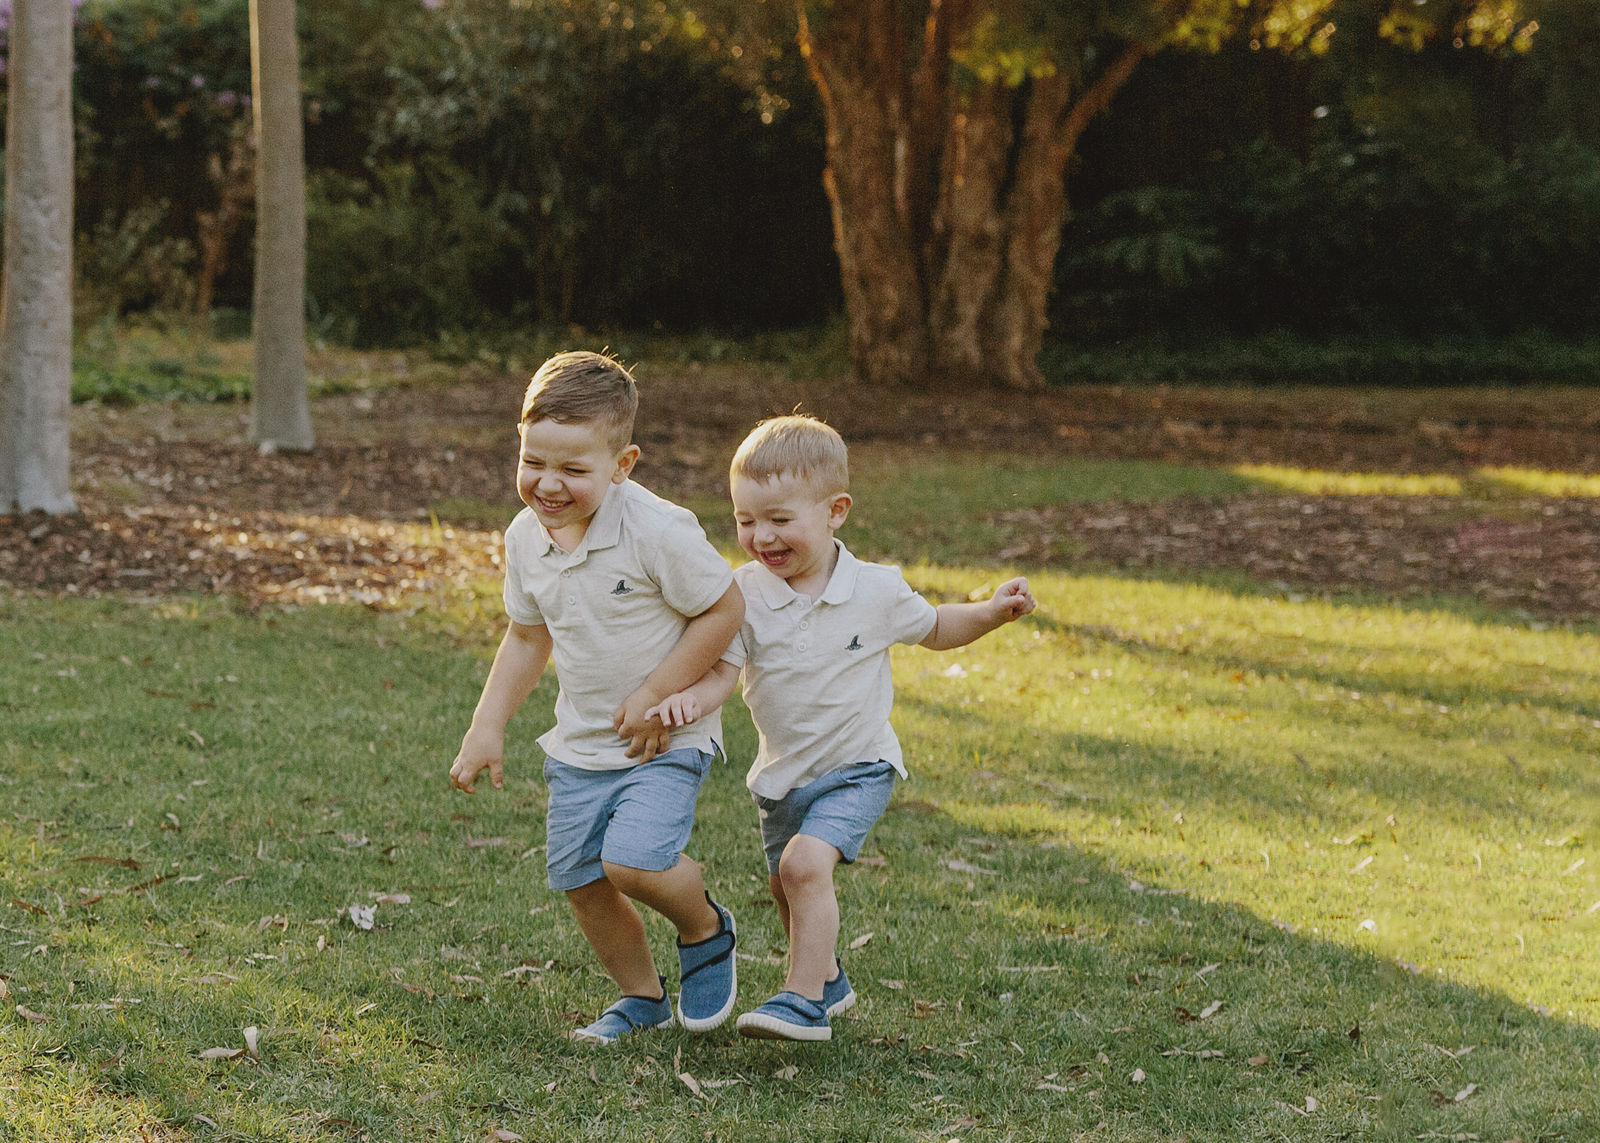 Brothers playing together at Family Photo Shoot